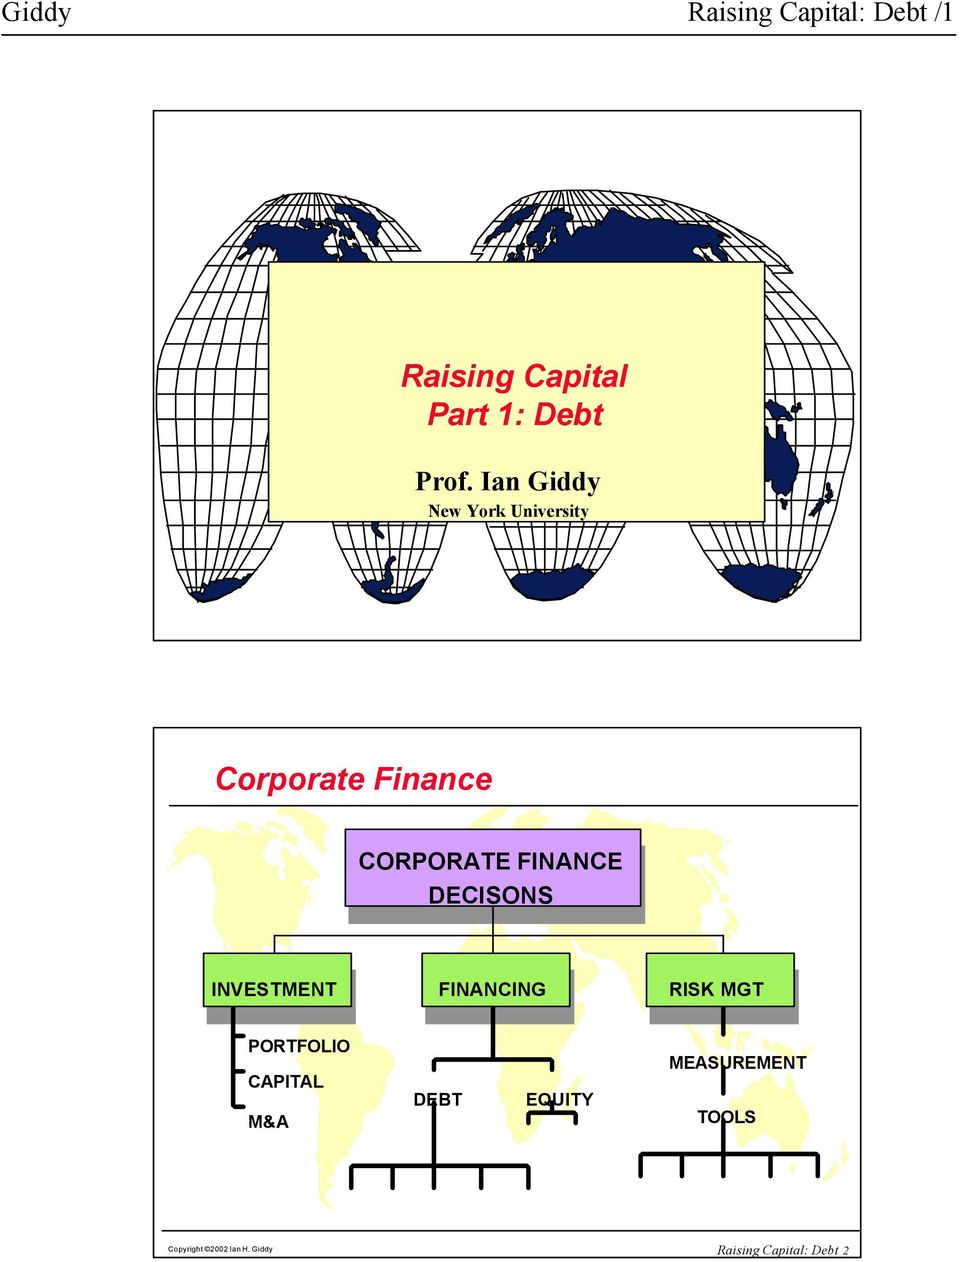 DECISONS INVESTMENT FINANCING RISK MGT MGT PORTFOLIO CAPITAL M&A DEBT